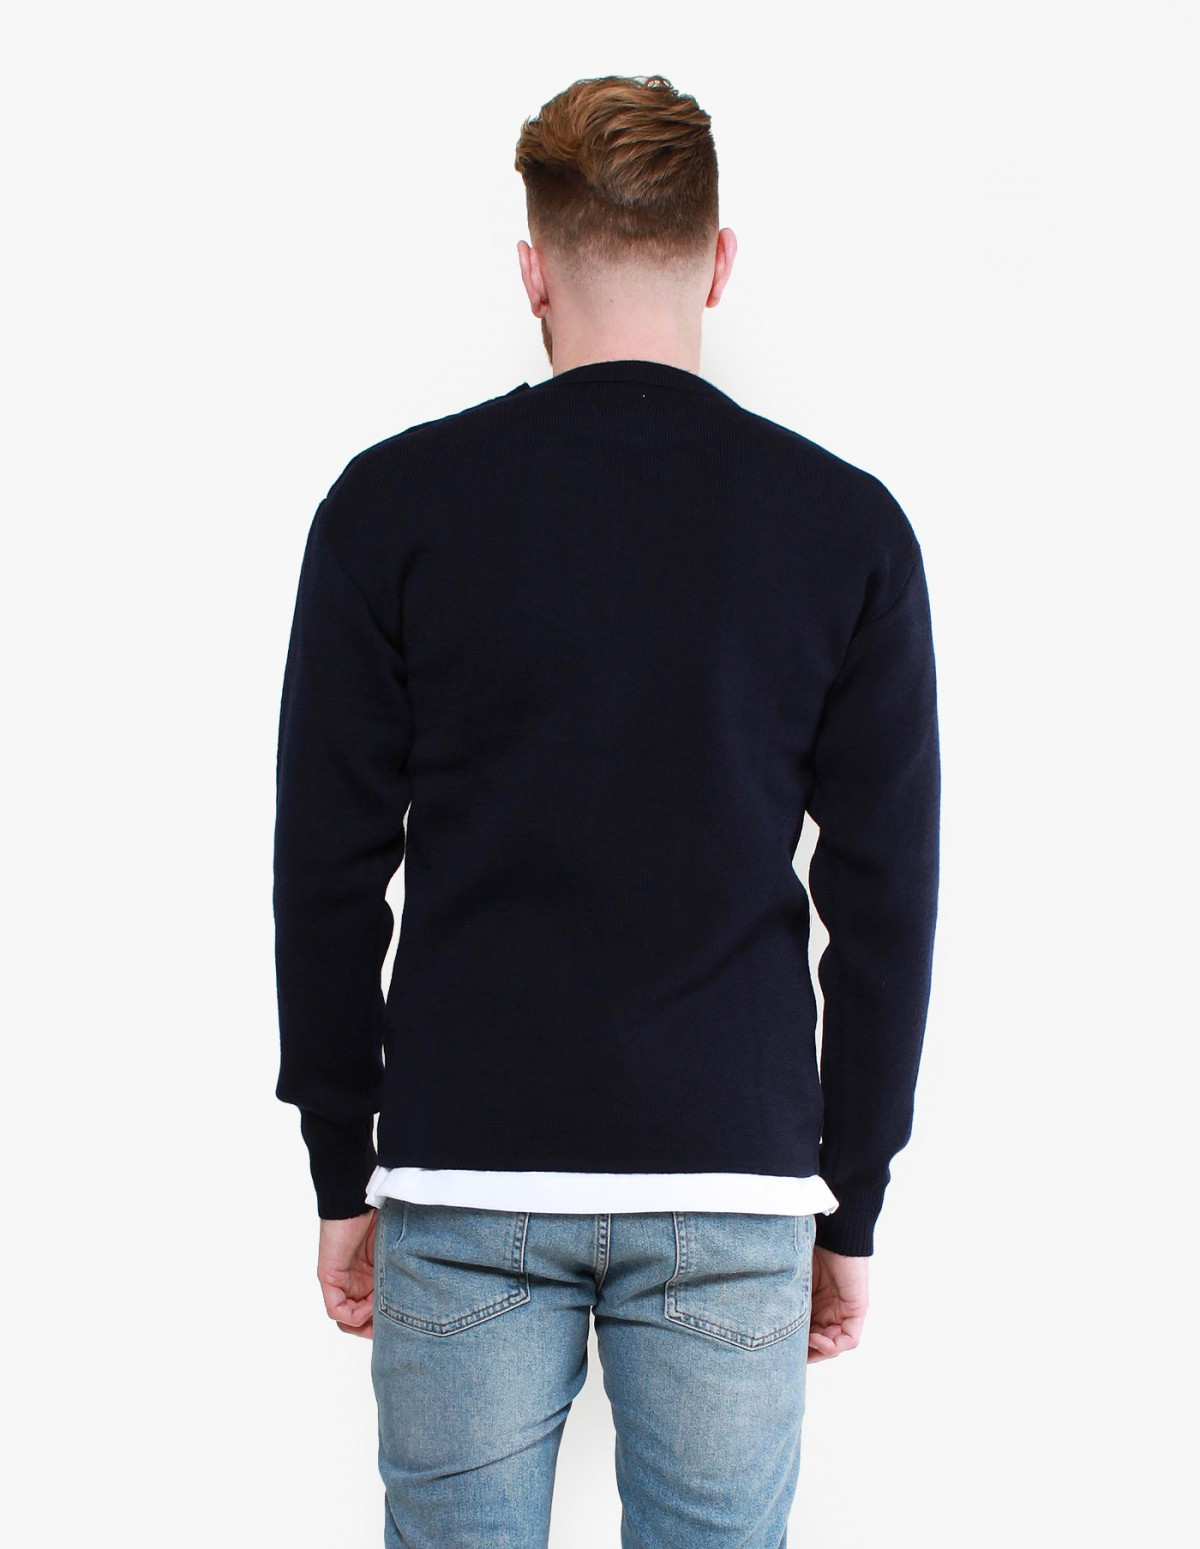 Armor Lux Fouesnant Knit in Navy